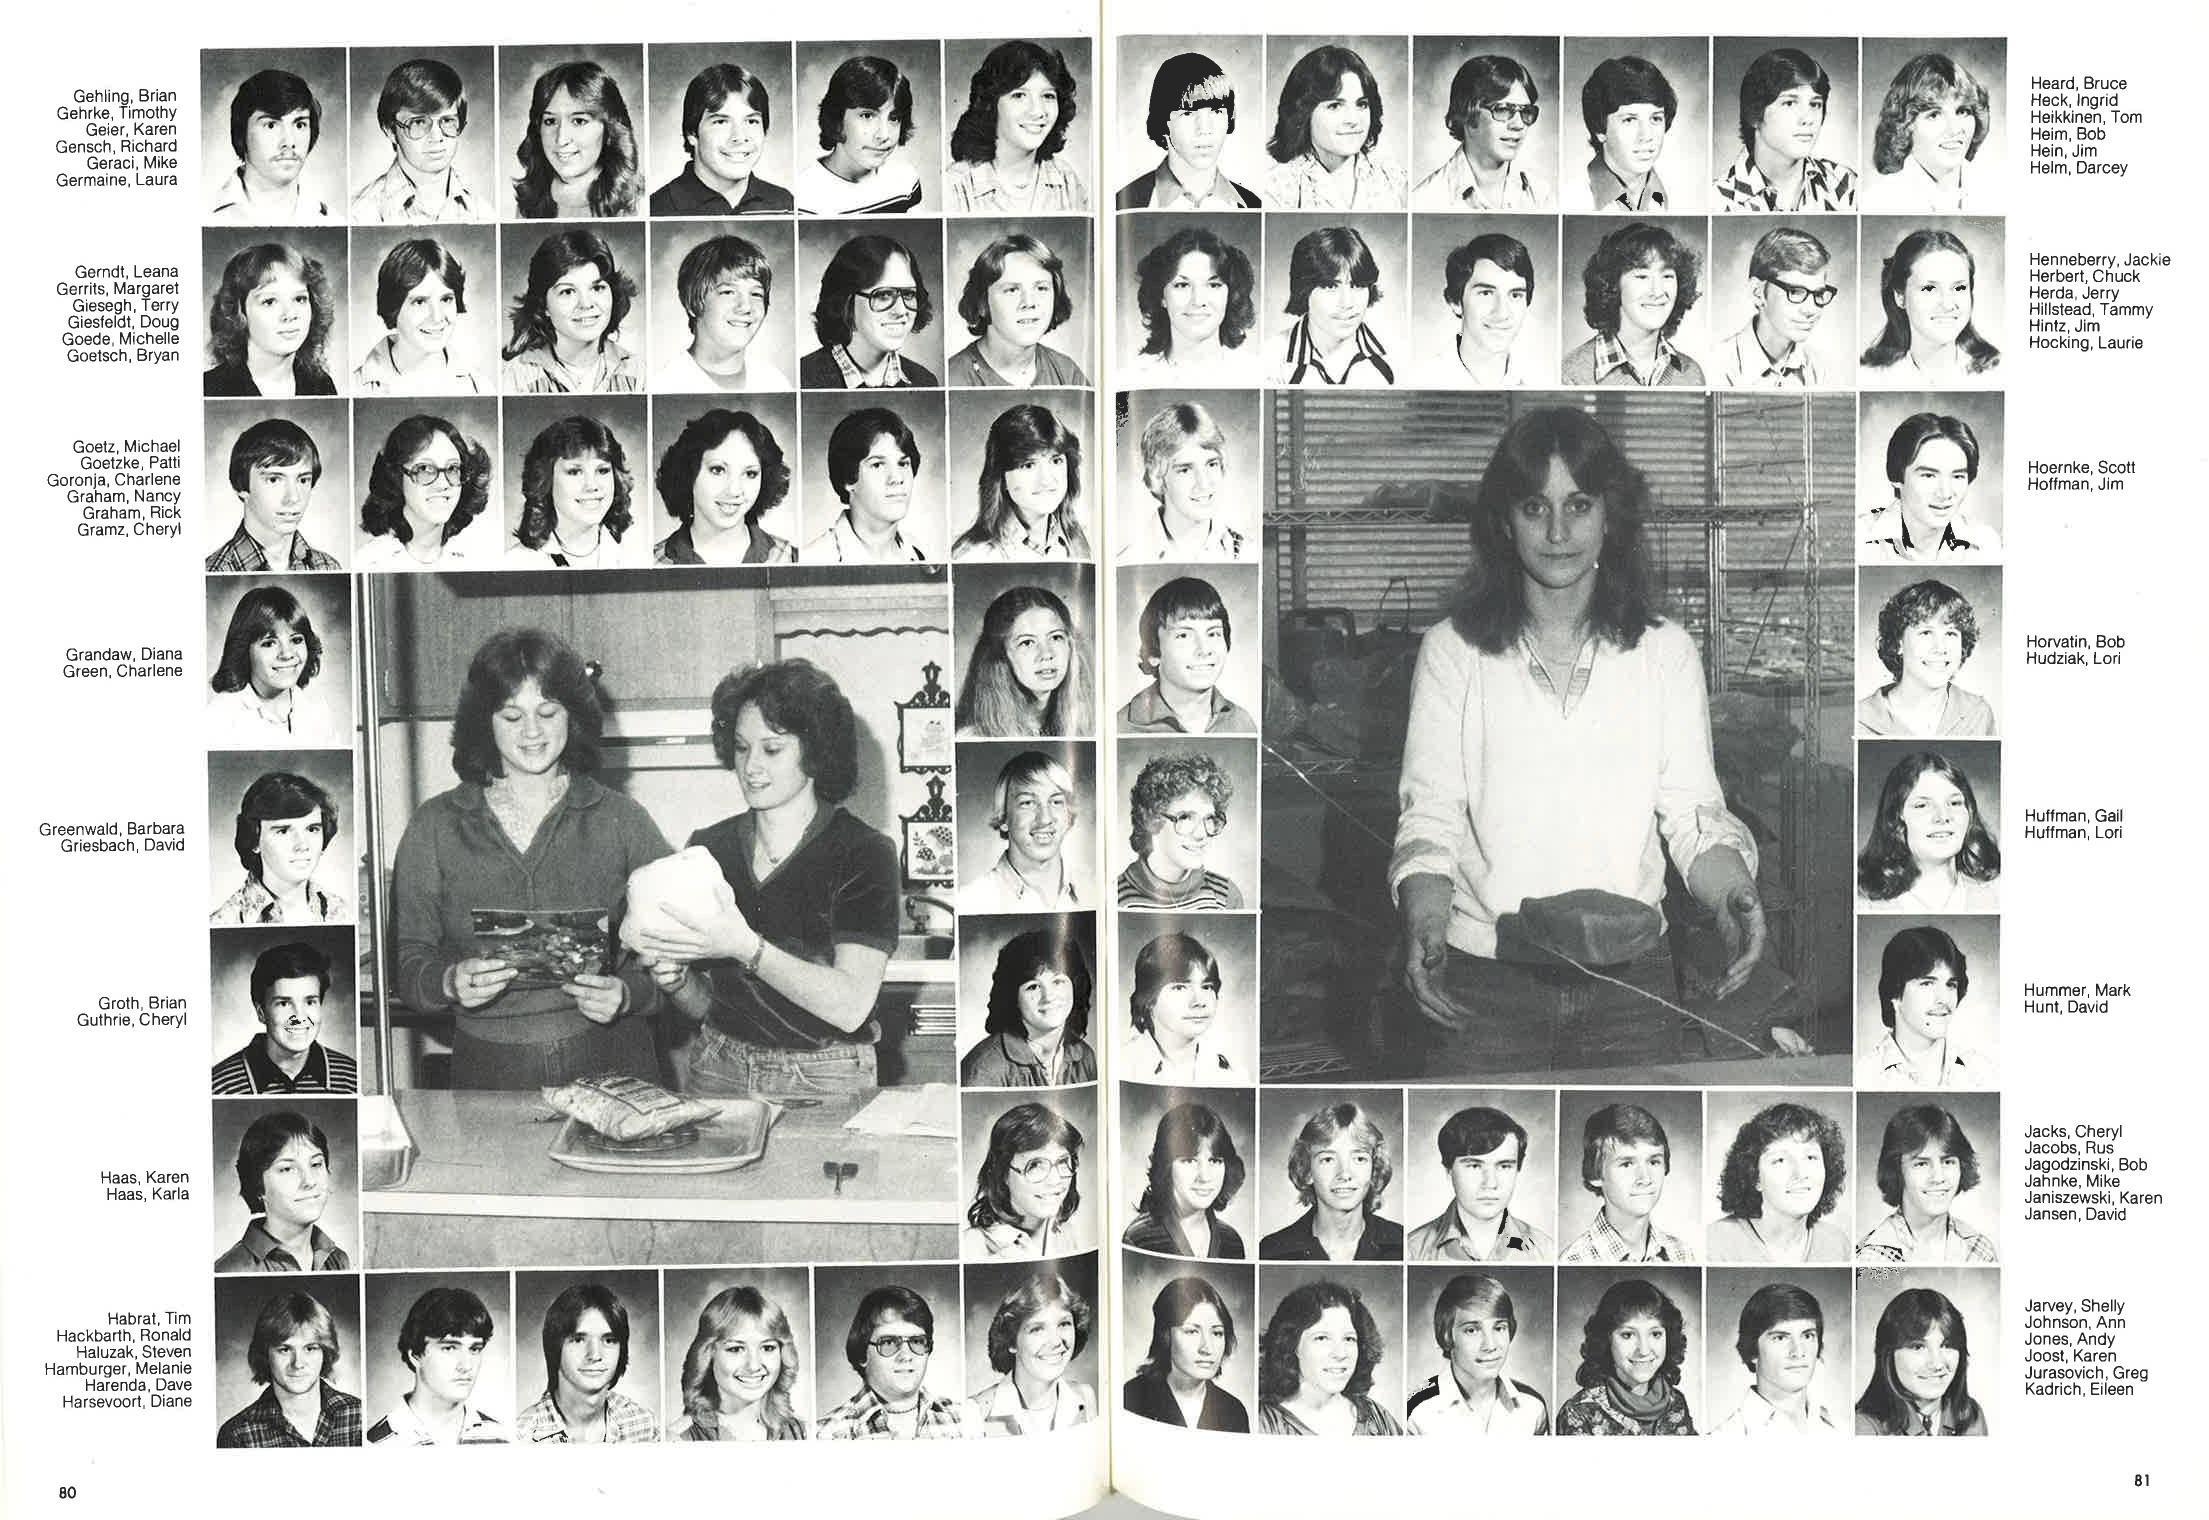 1980_Yearbook_80.jpg